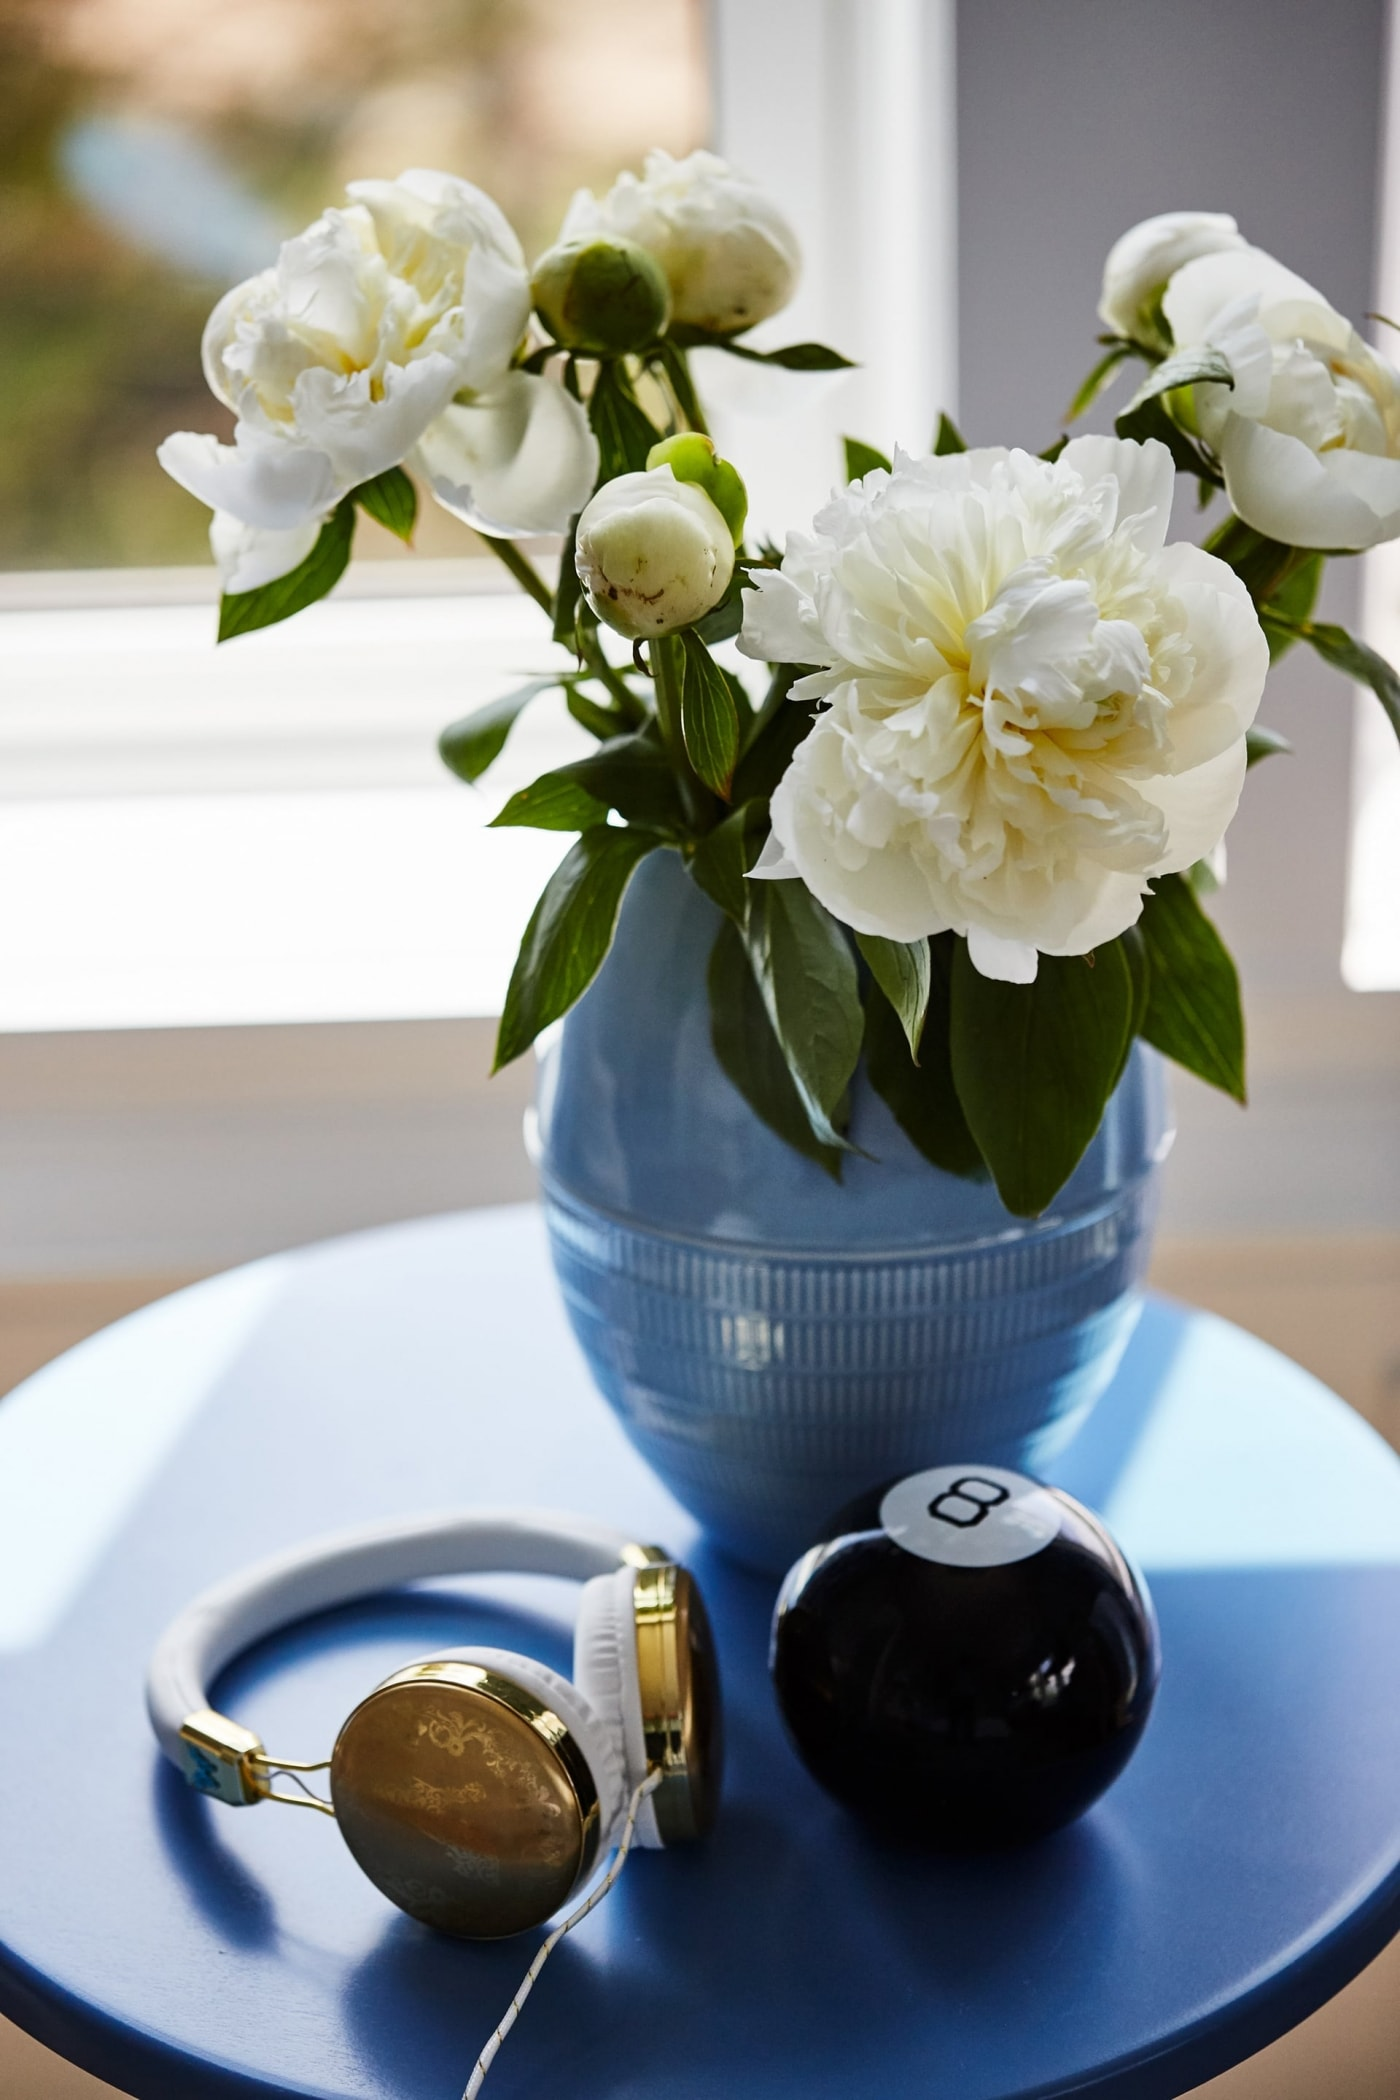 Royal blue vase with flowers on blue round table with magic 8 ball and headphones